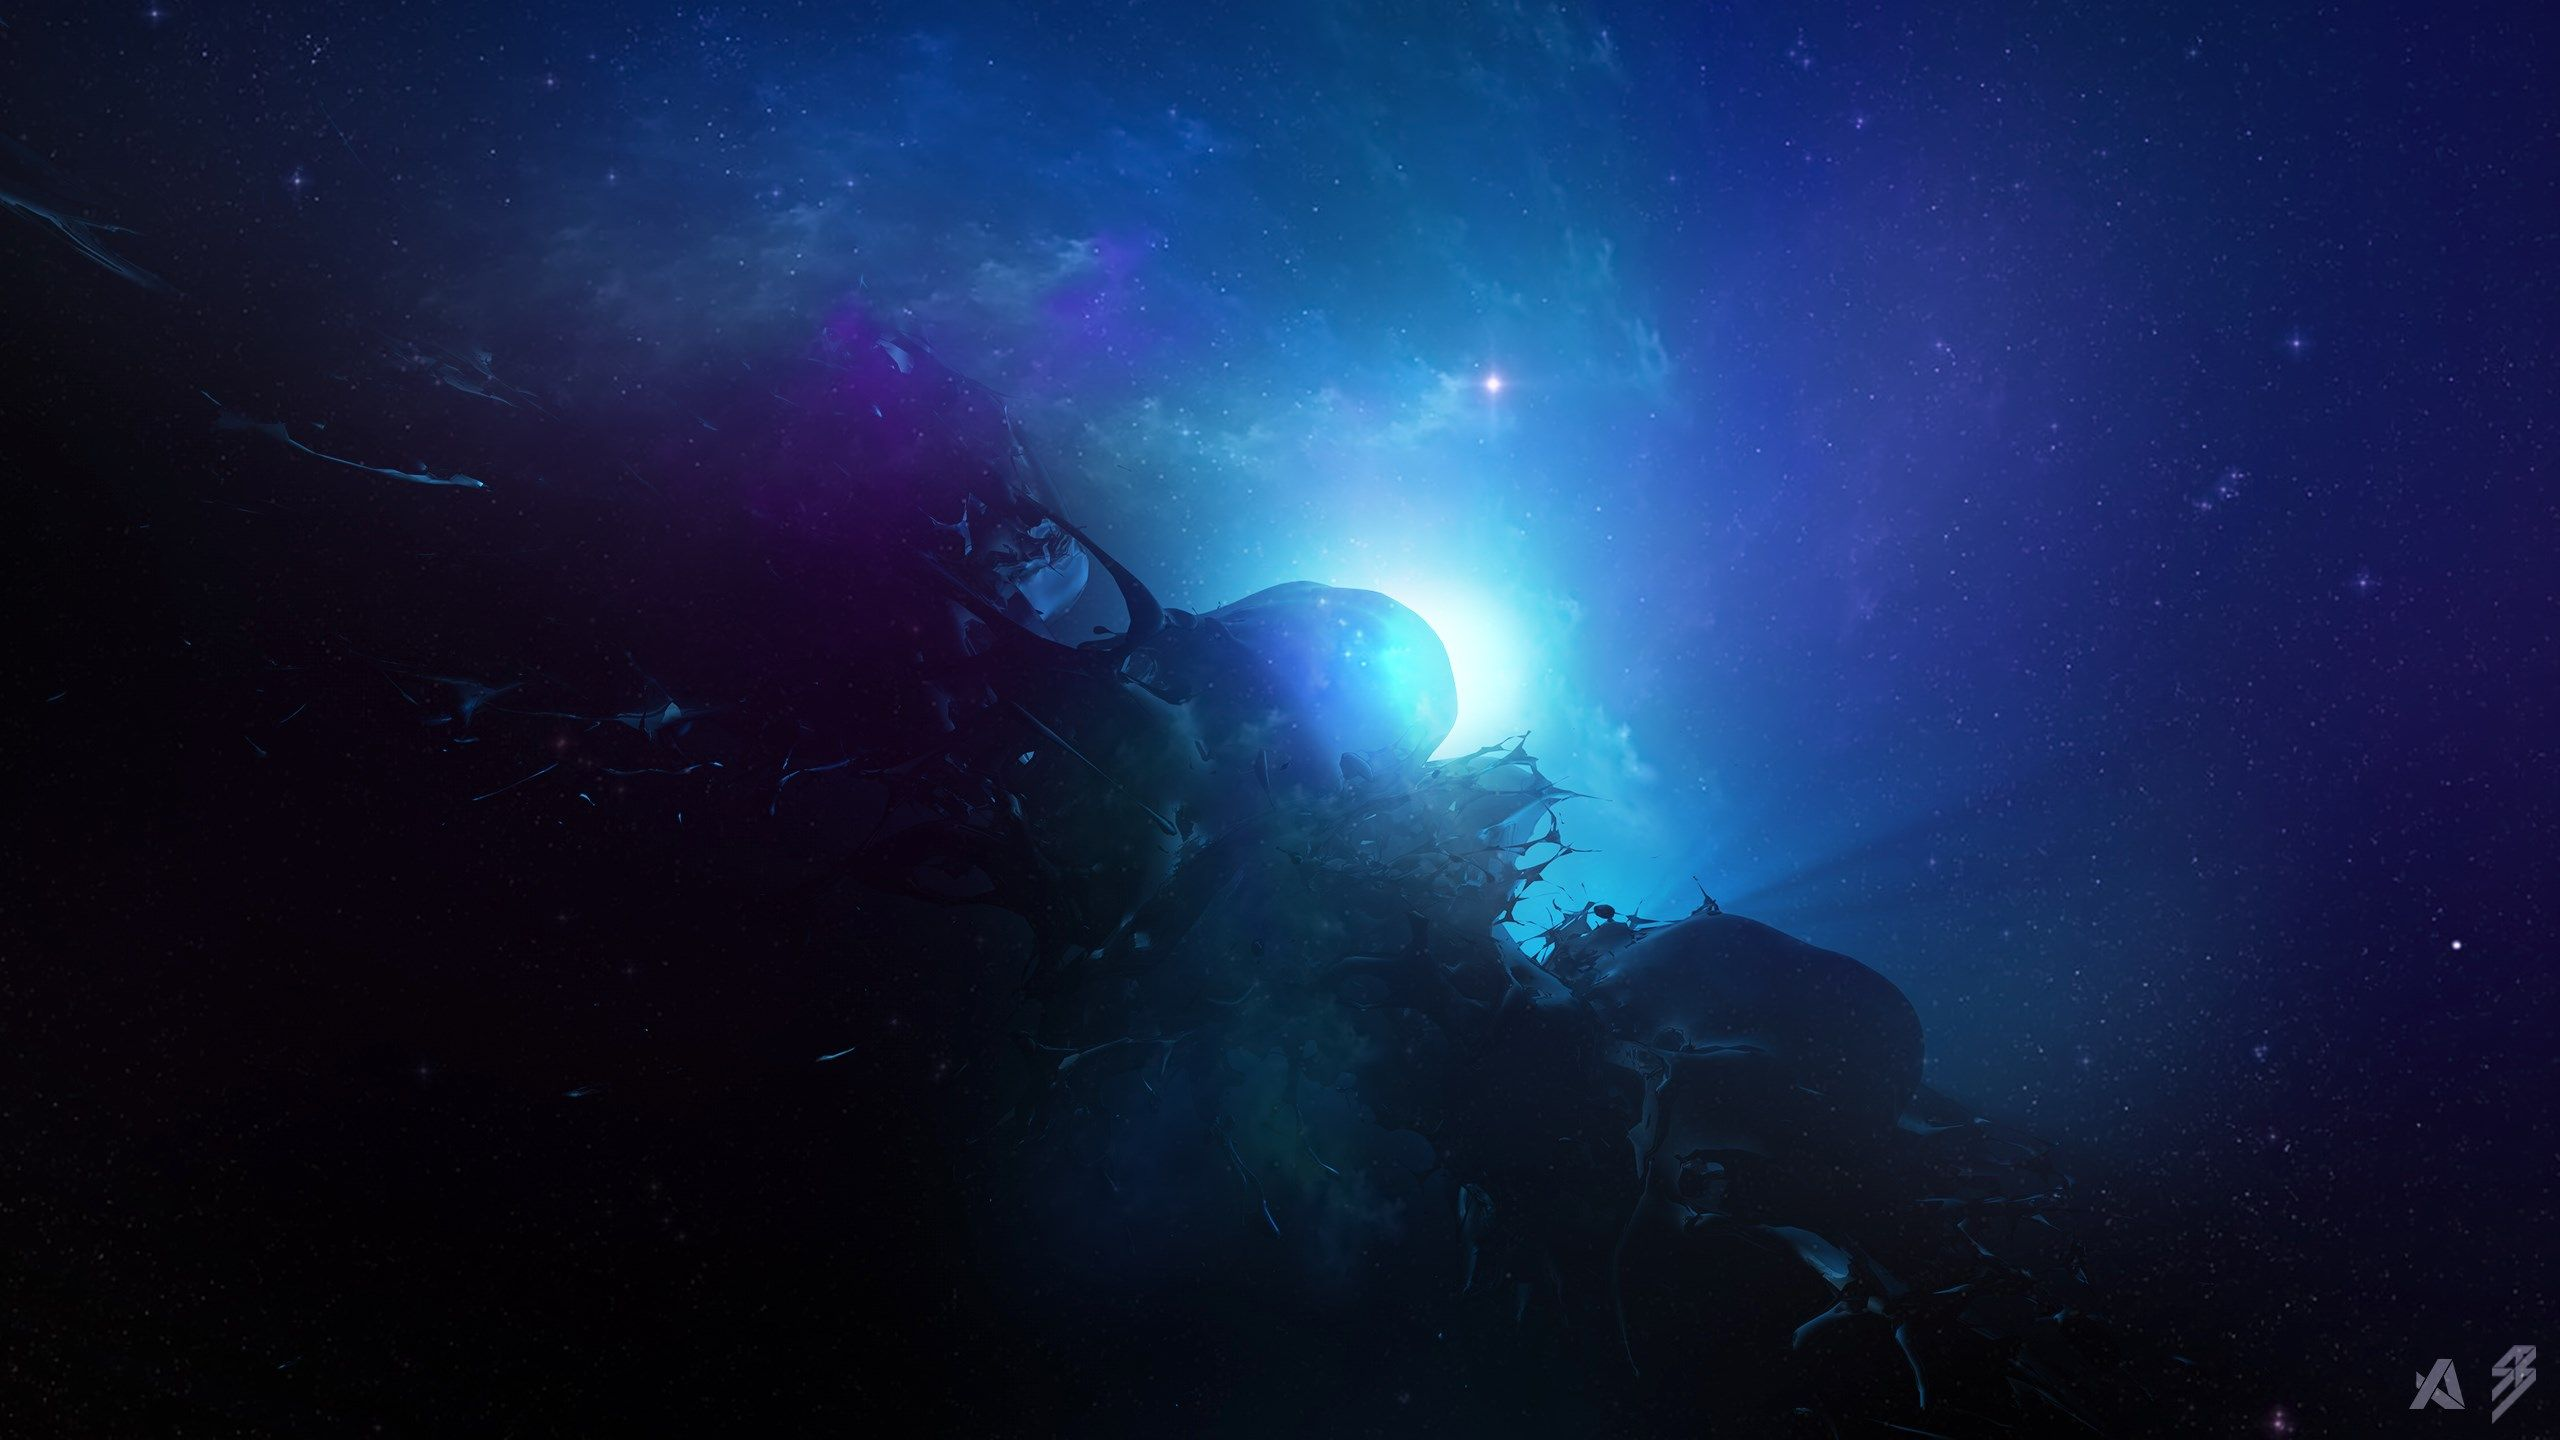 2560x1440 px high resolution wallpapers = space wallpaper